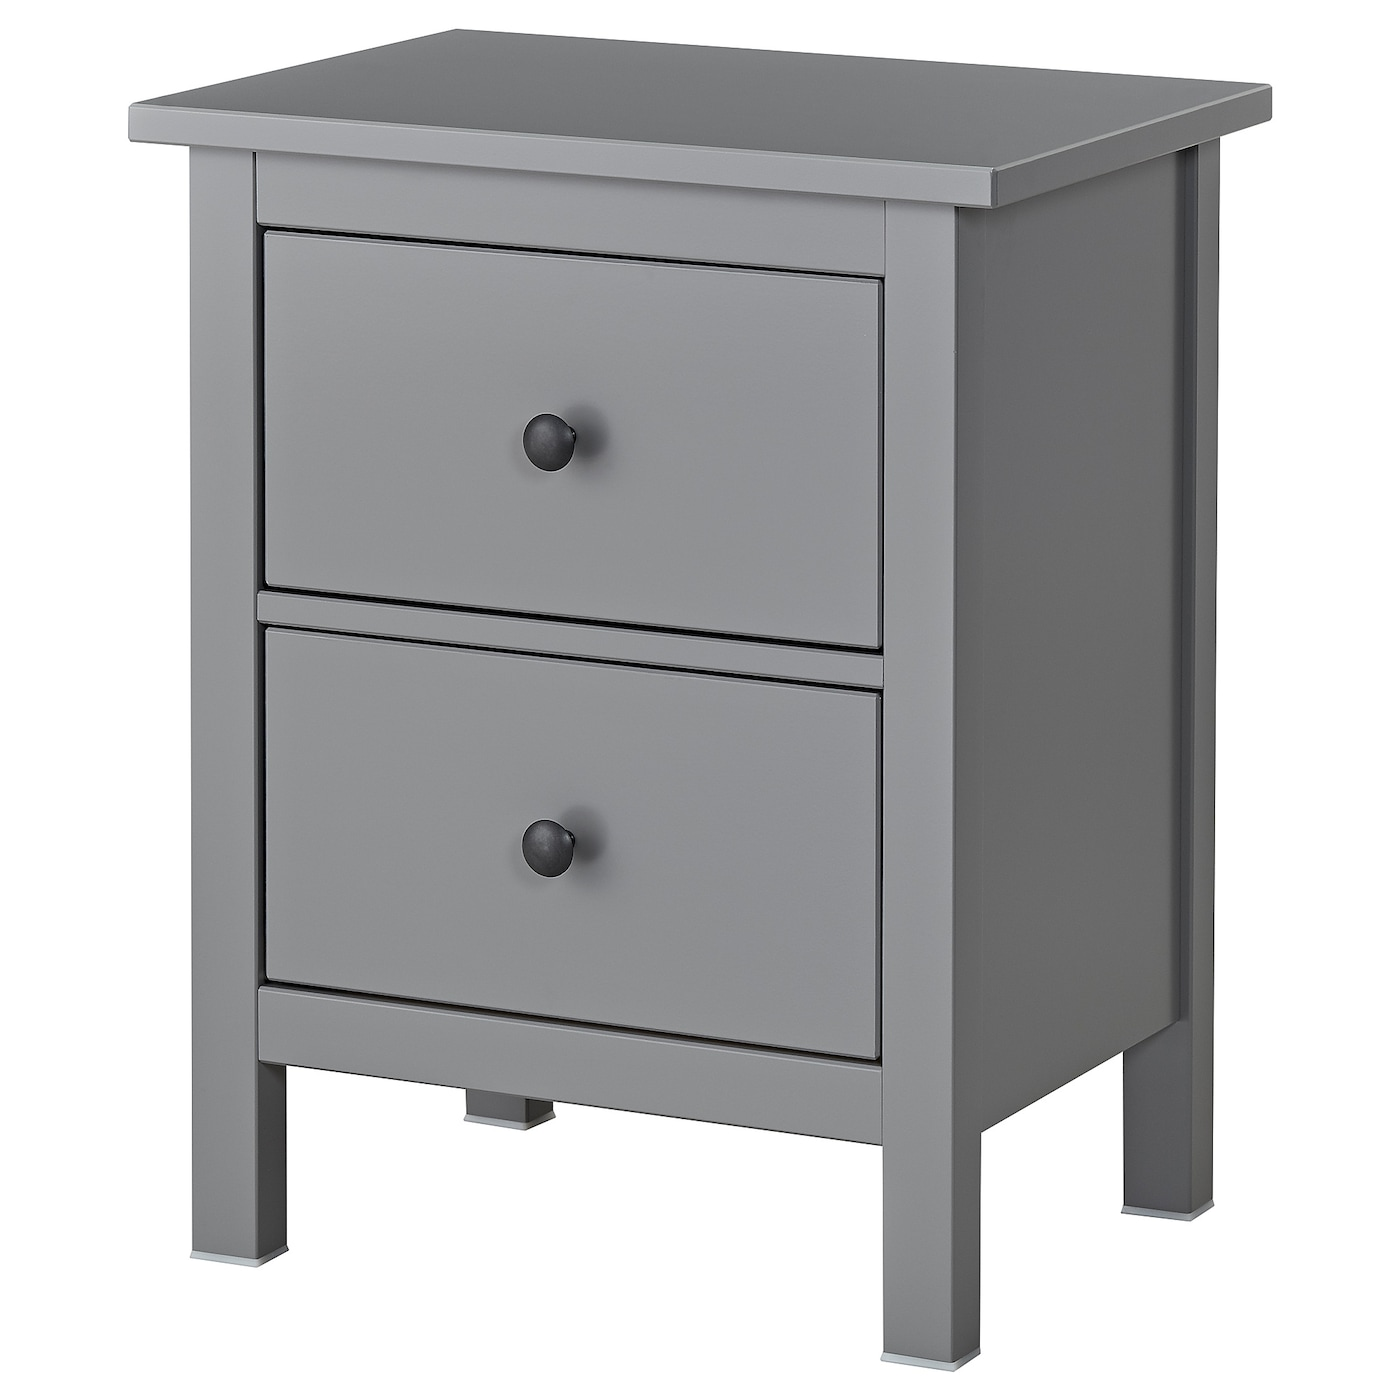 white bedroom furniture ikea. IKEA HEMNES Chest Of 2 Drawers Smooth Running With Pull-out Stop. White Bedroom Furniture Ikea